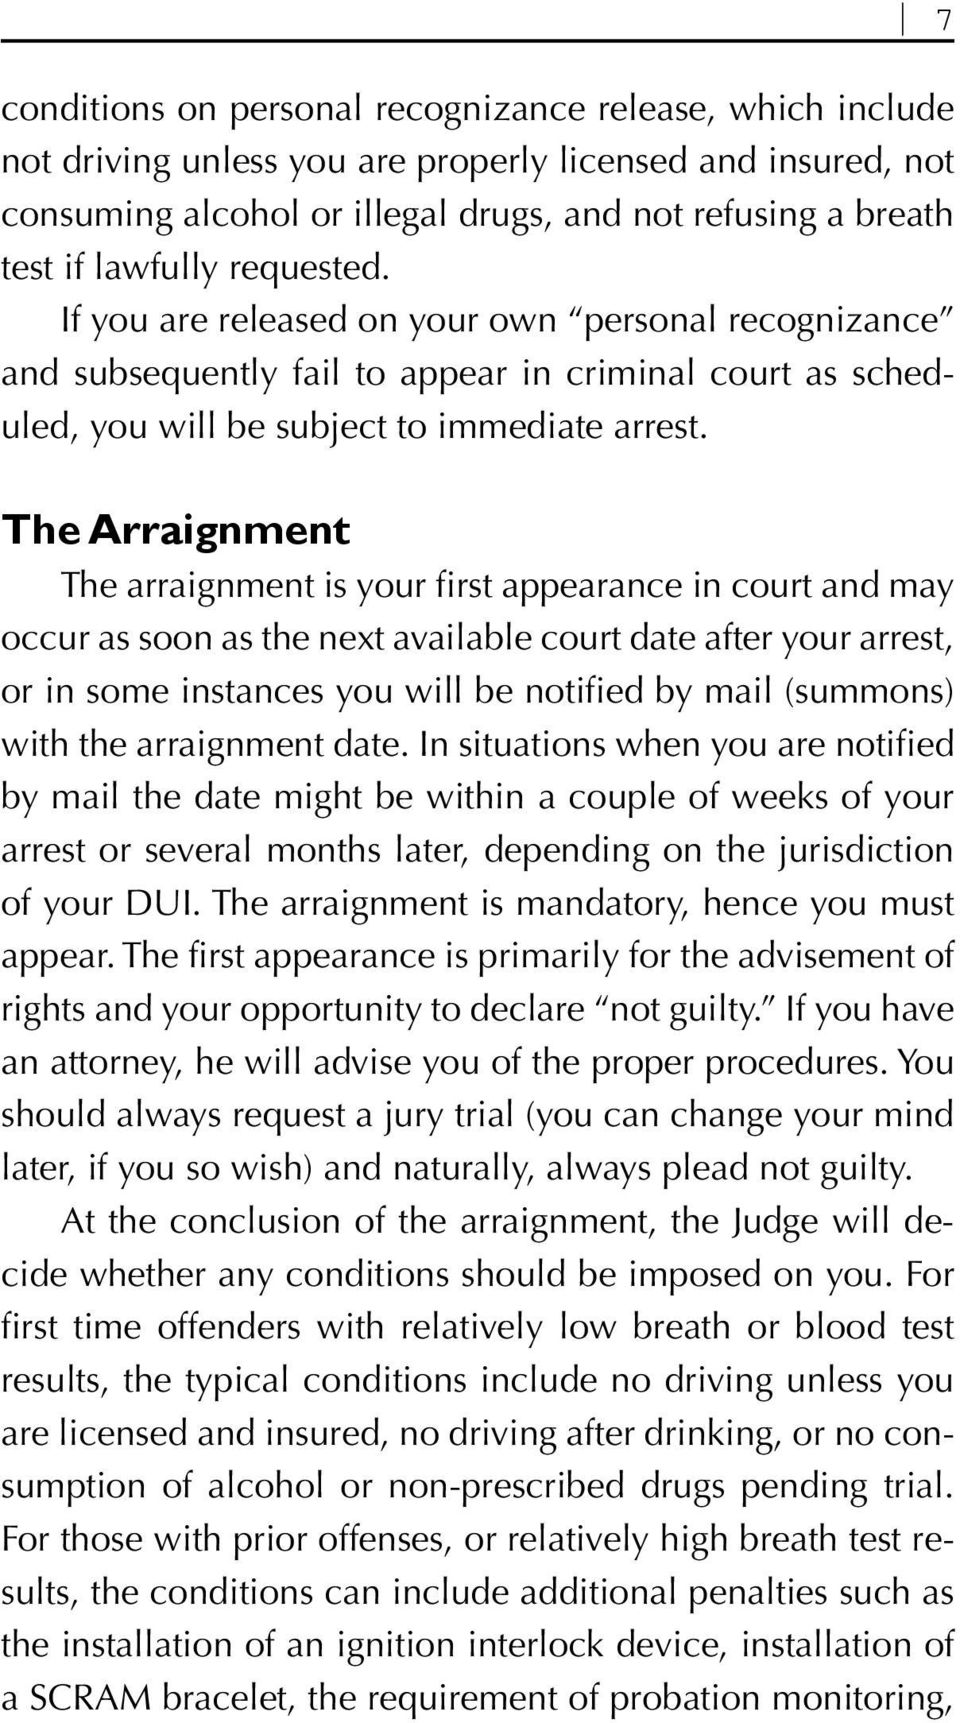 The Arraignment The arraignment is your first appearance in court and may occur as soon as the next available court date after your arrest, or in some instances you will be notified by mail (summons)